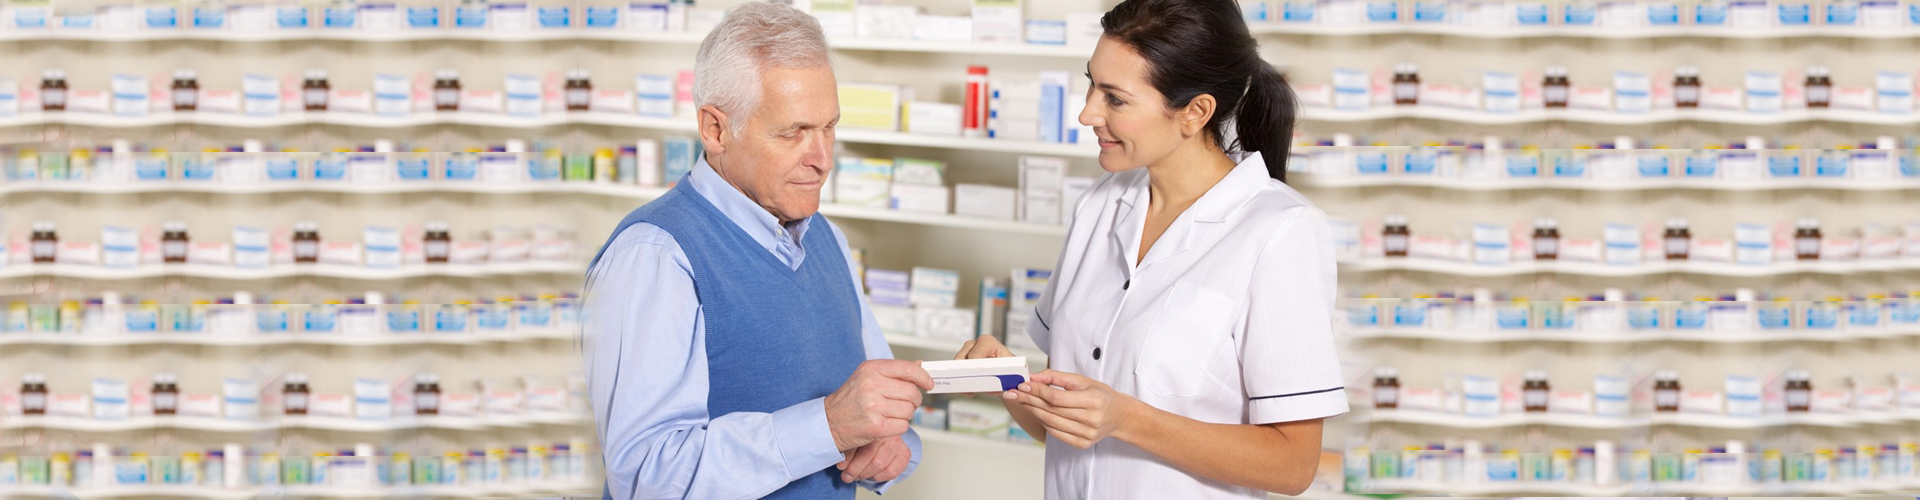 a patient getting his medication from the pharmacist